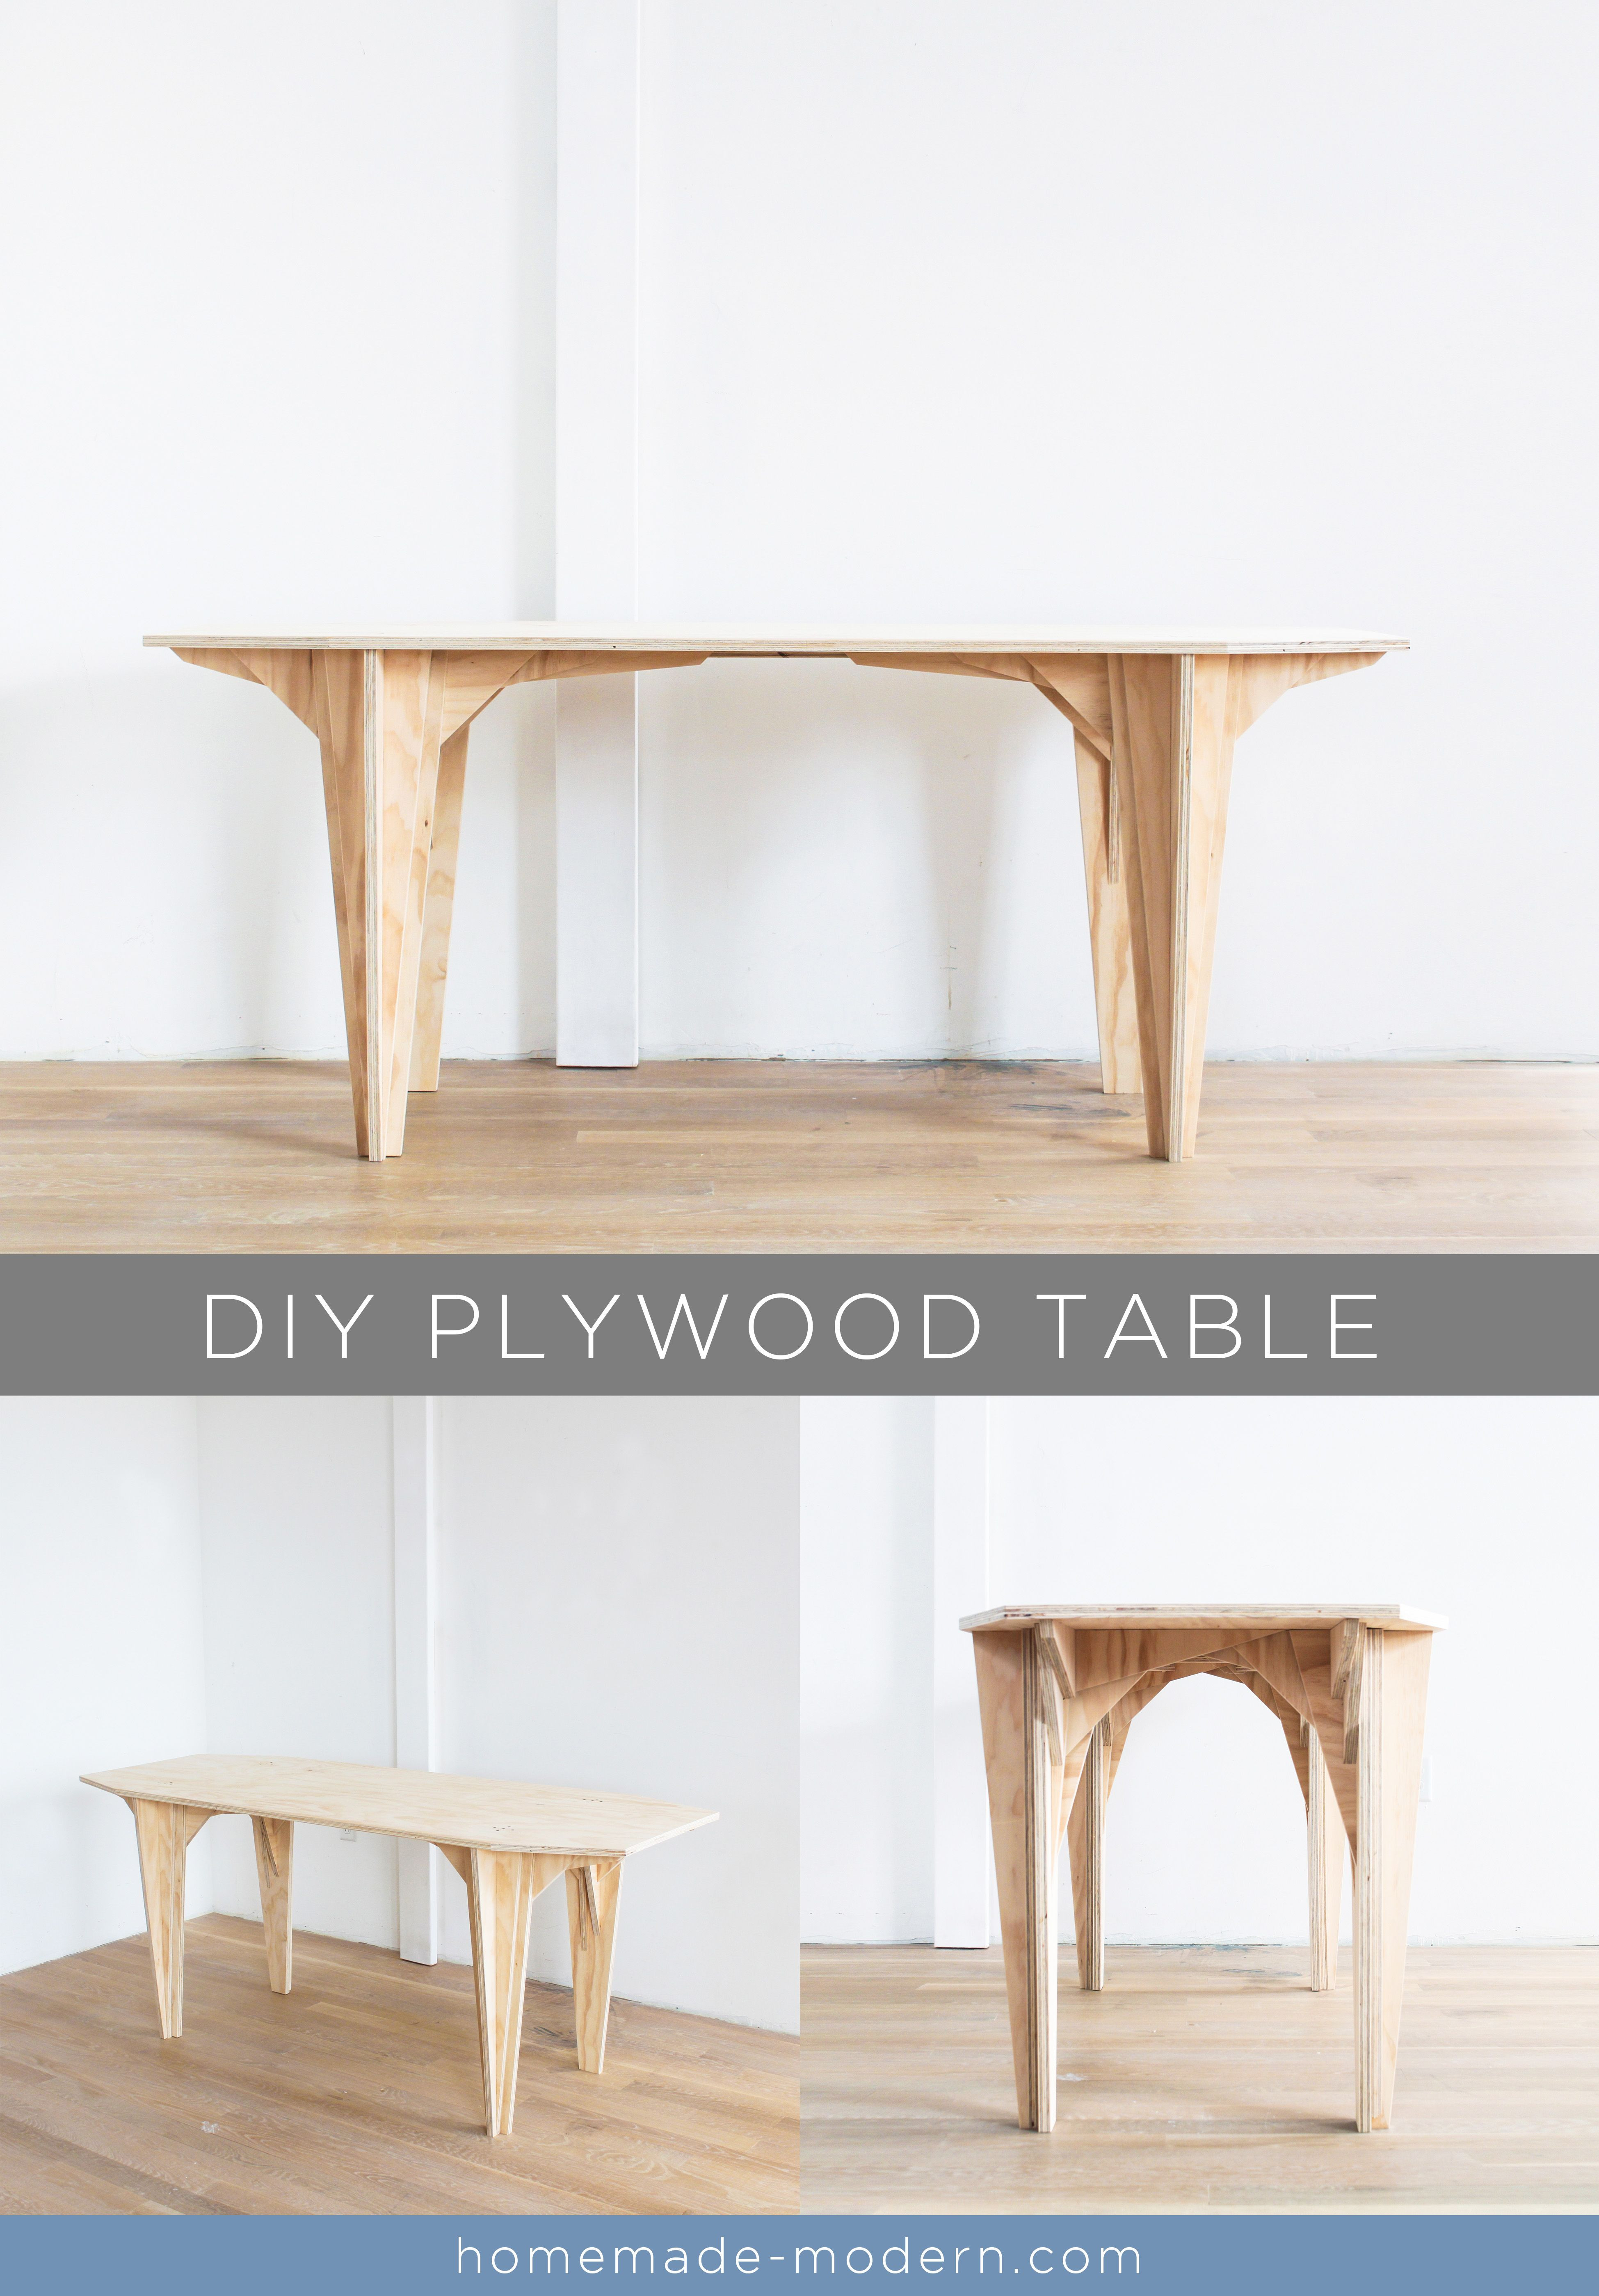 This Diy Plywood Table Is Made Out 190 Plywood From Home